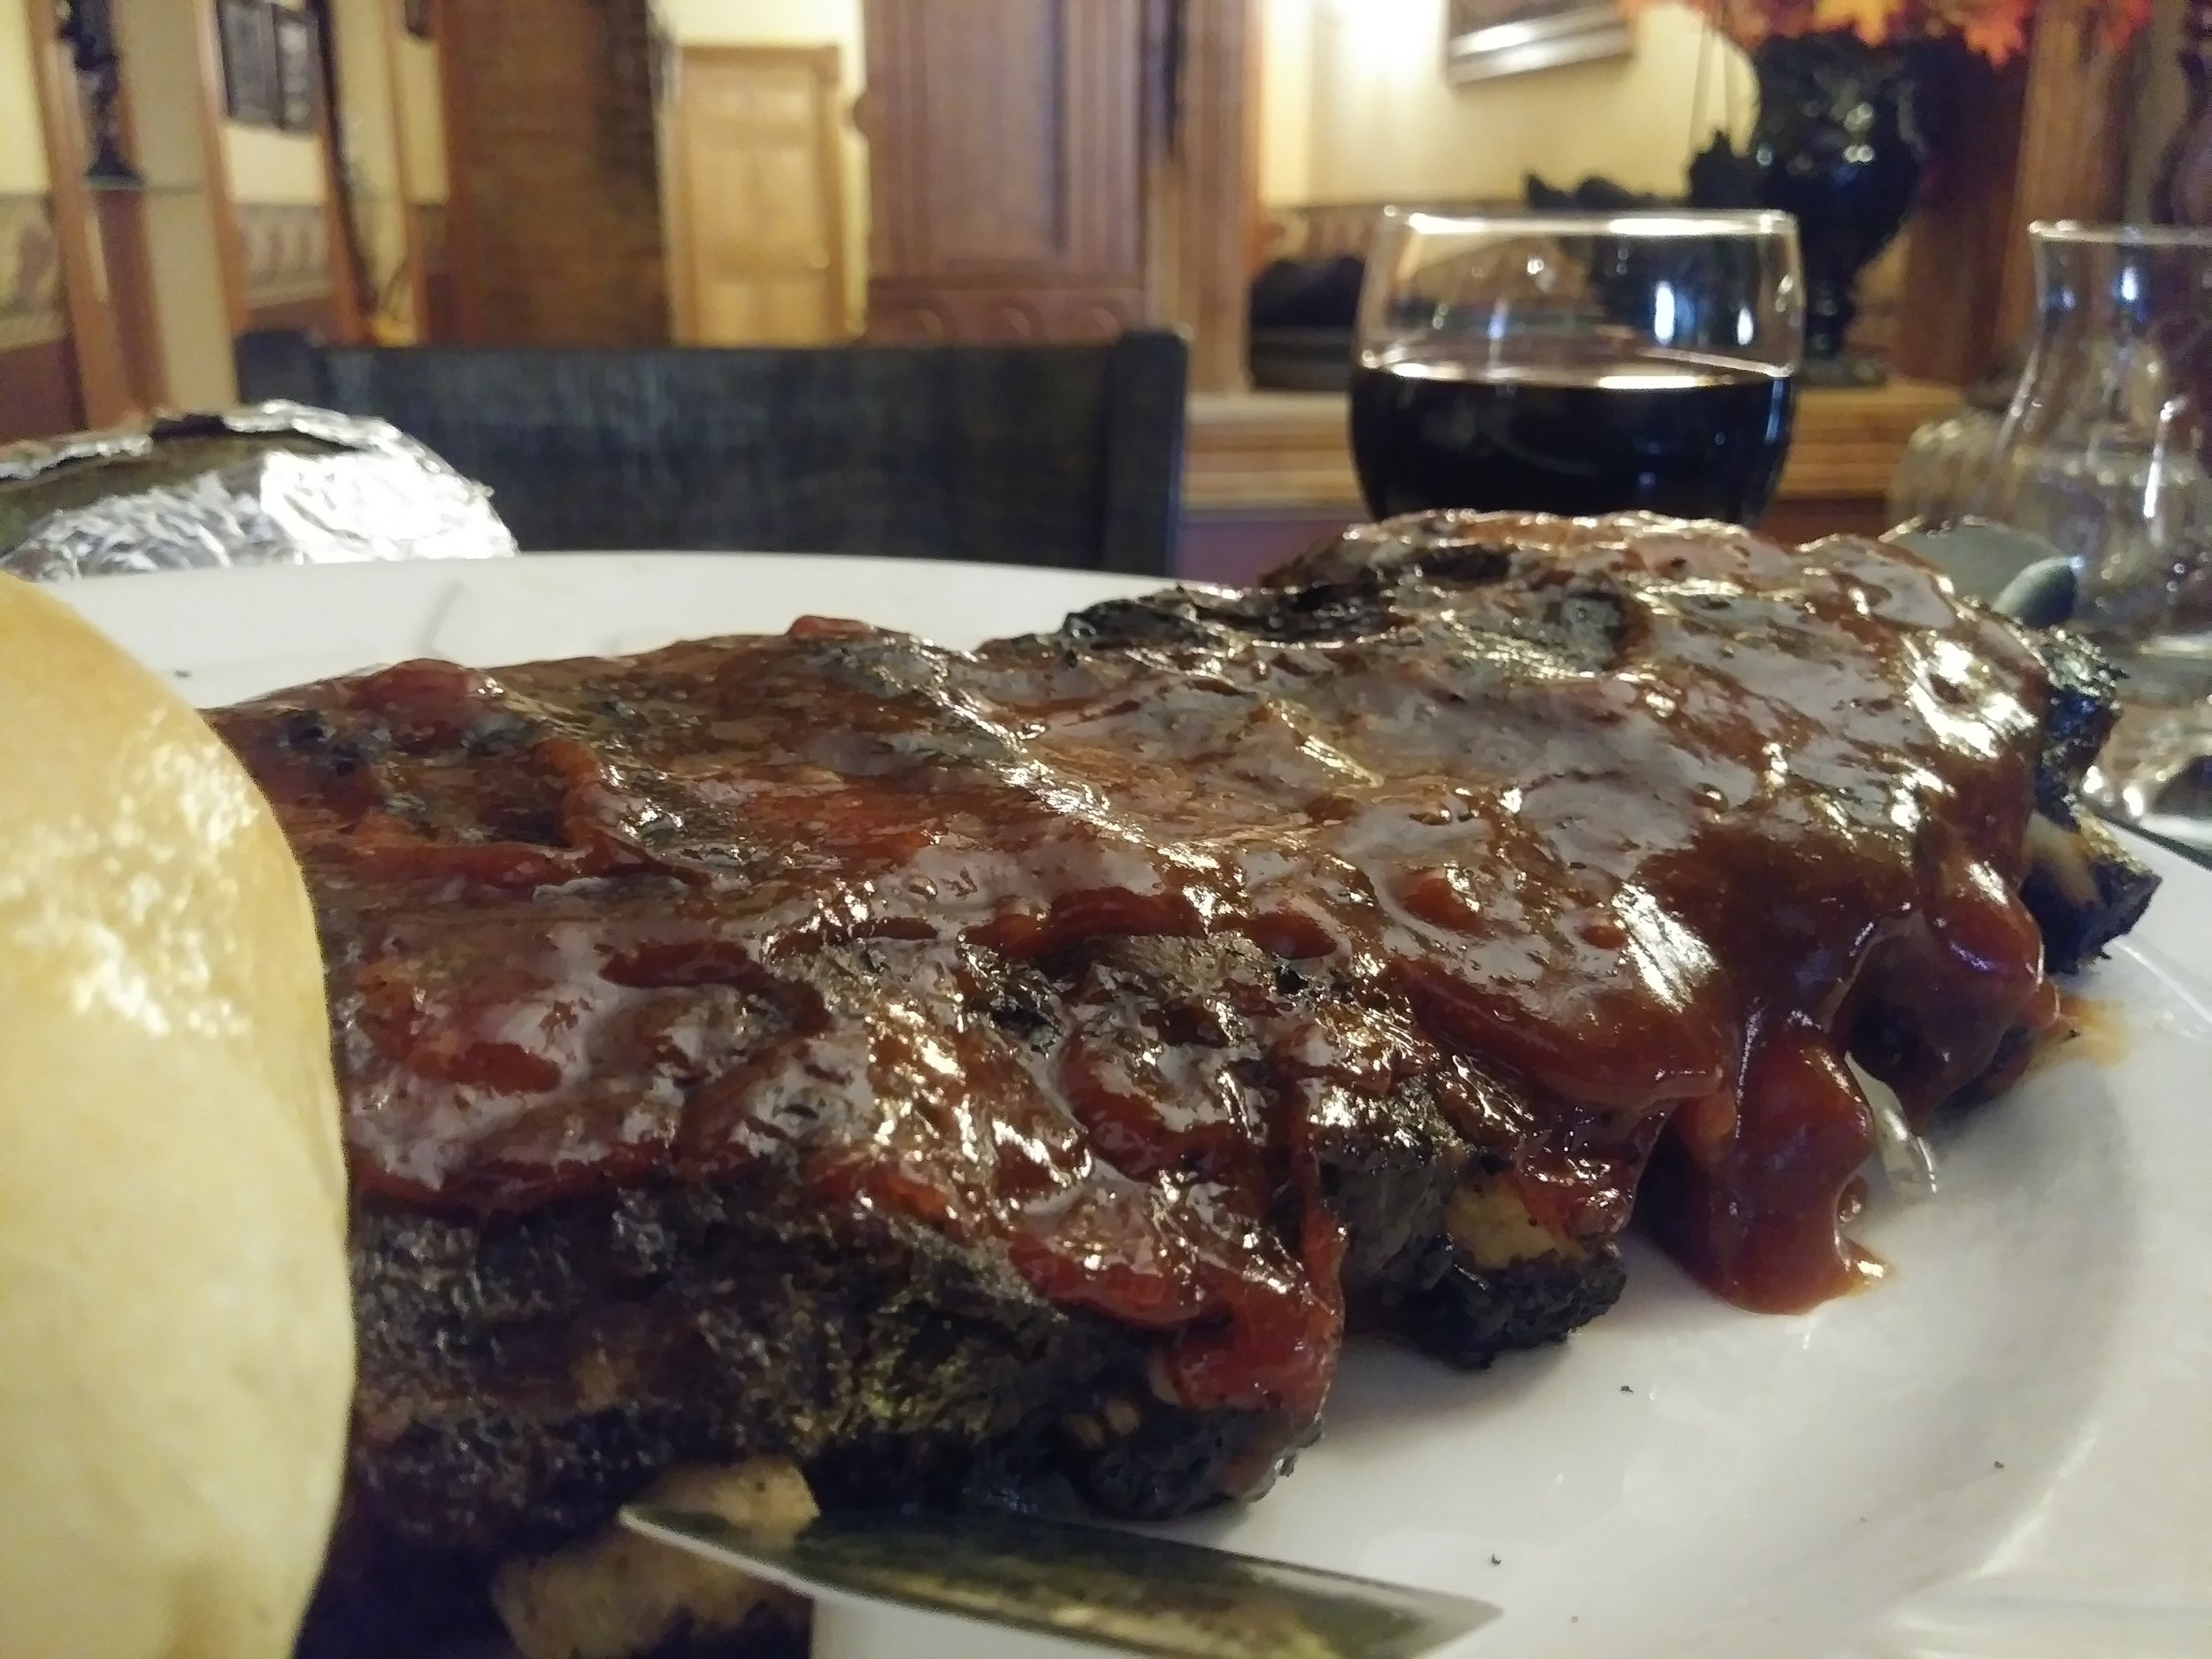 award winning bbq ribs - A generous portion of our award-winning pork back ribs complimented with our own sweet & tangy BBQ sauce recipe $15.99